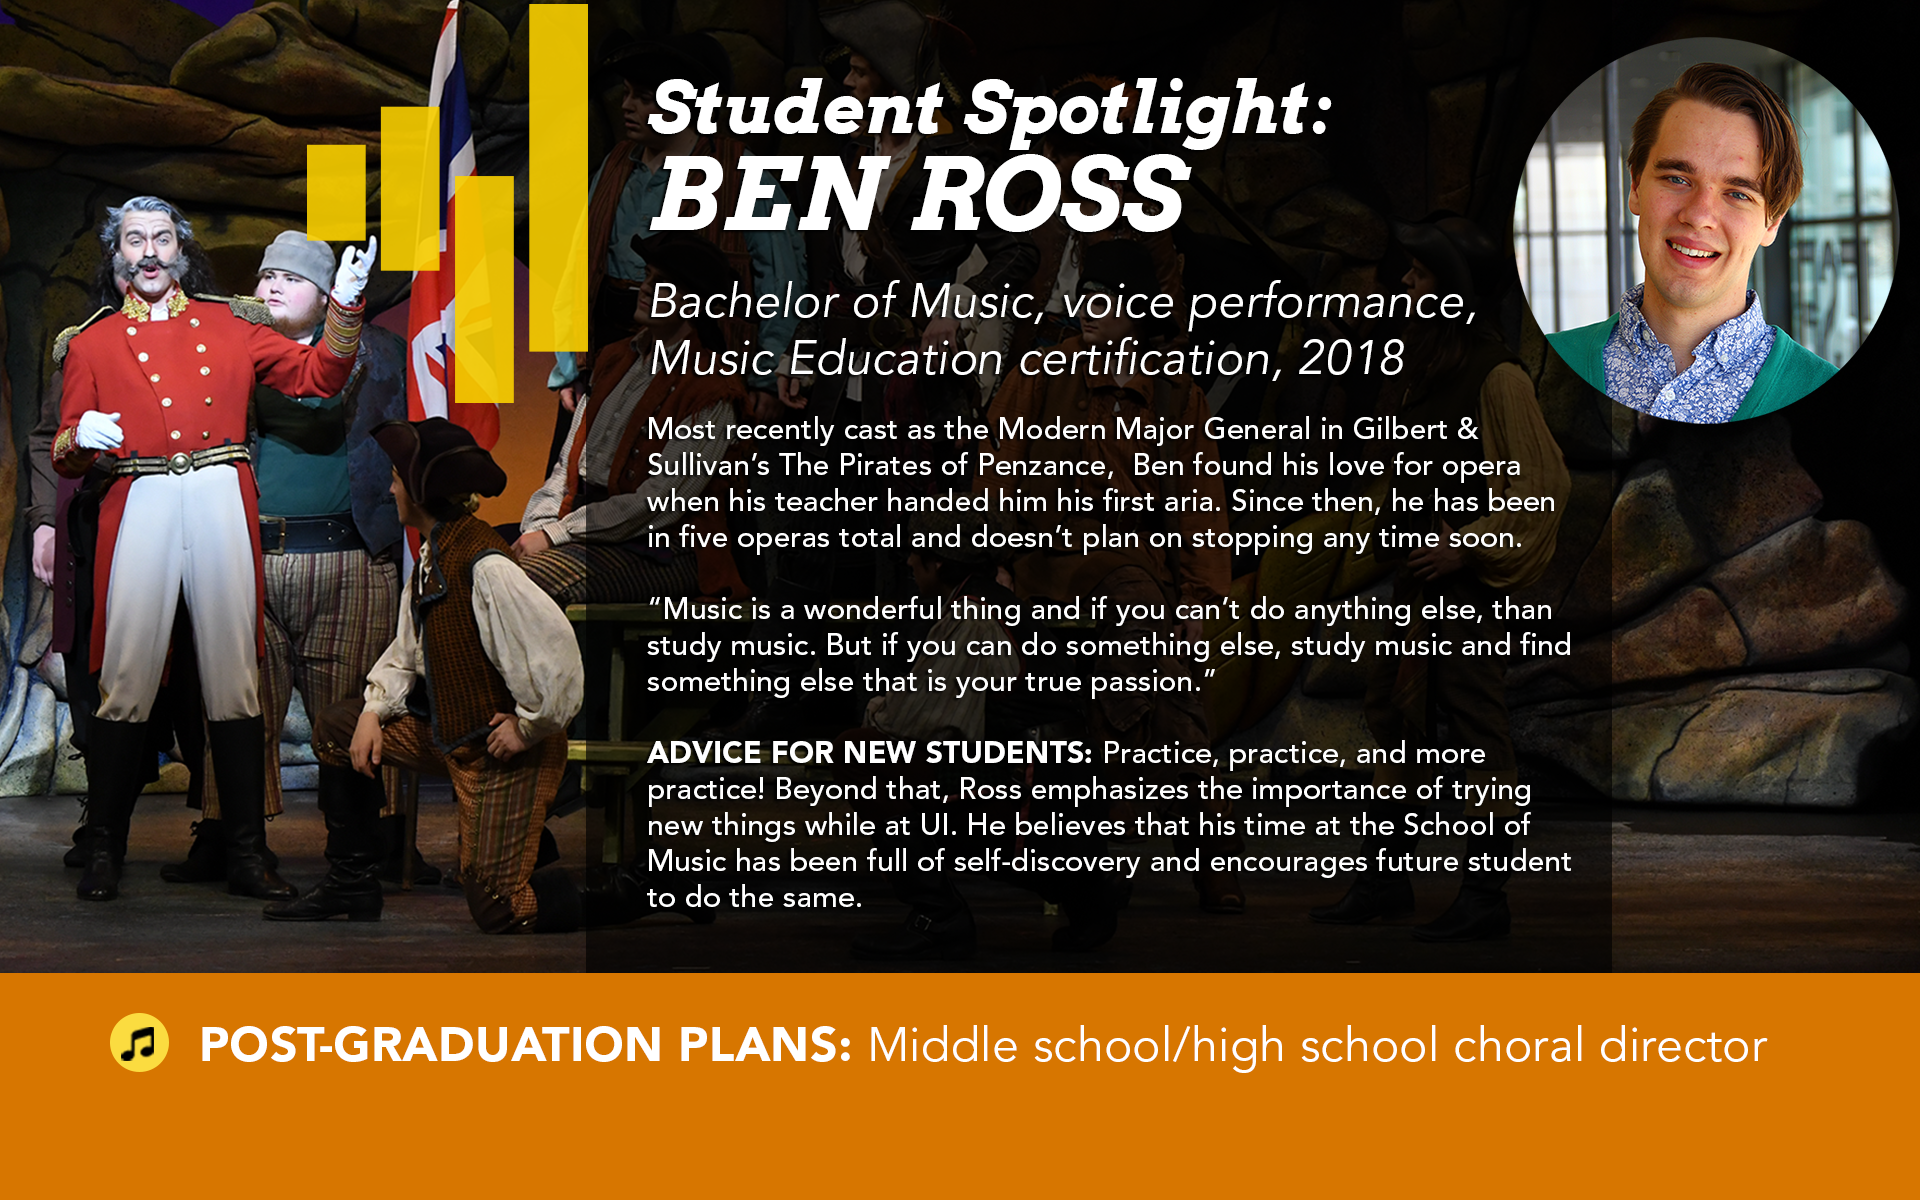 Student Spotlight Ben Ross